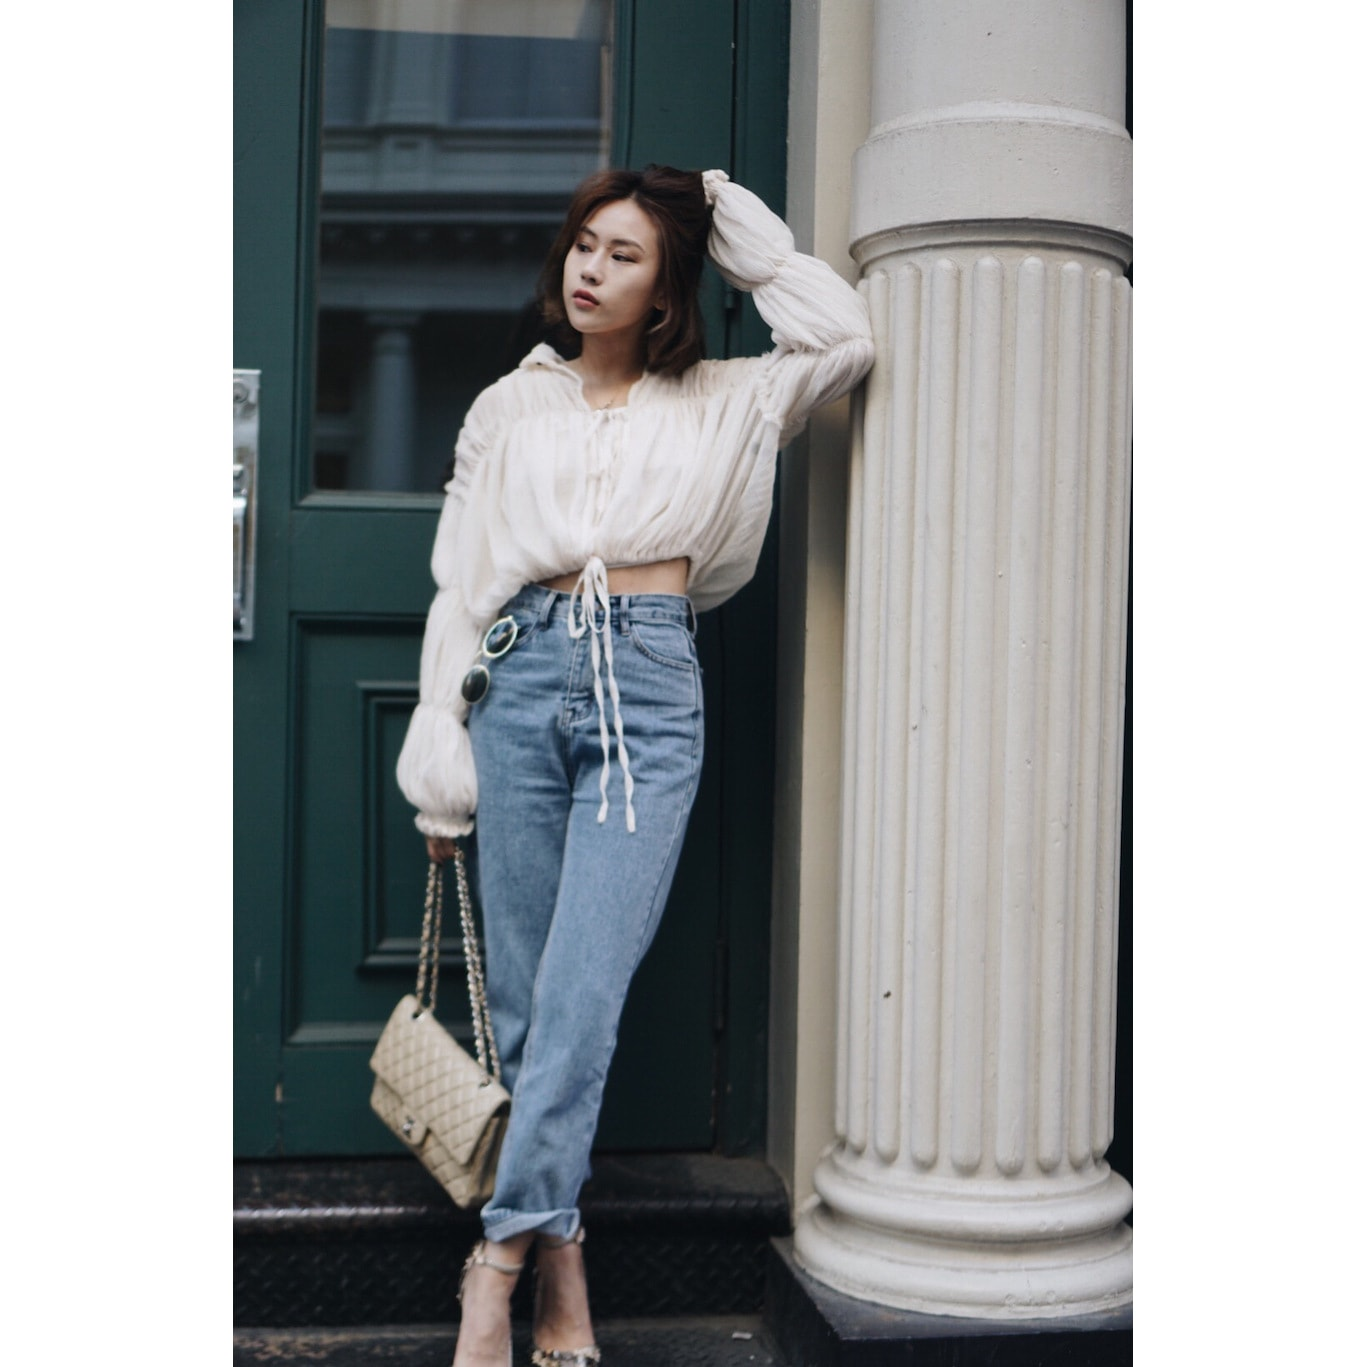 Yamibuy.com:Customer reviews:VERAFIED La Crepe Silk Shirt White One-size(S - L)